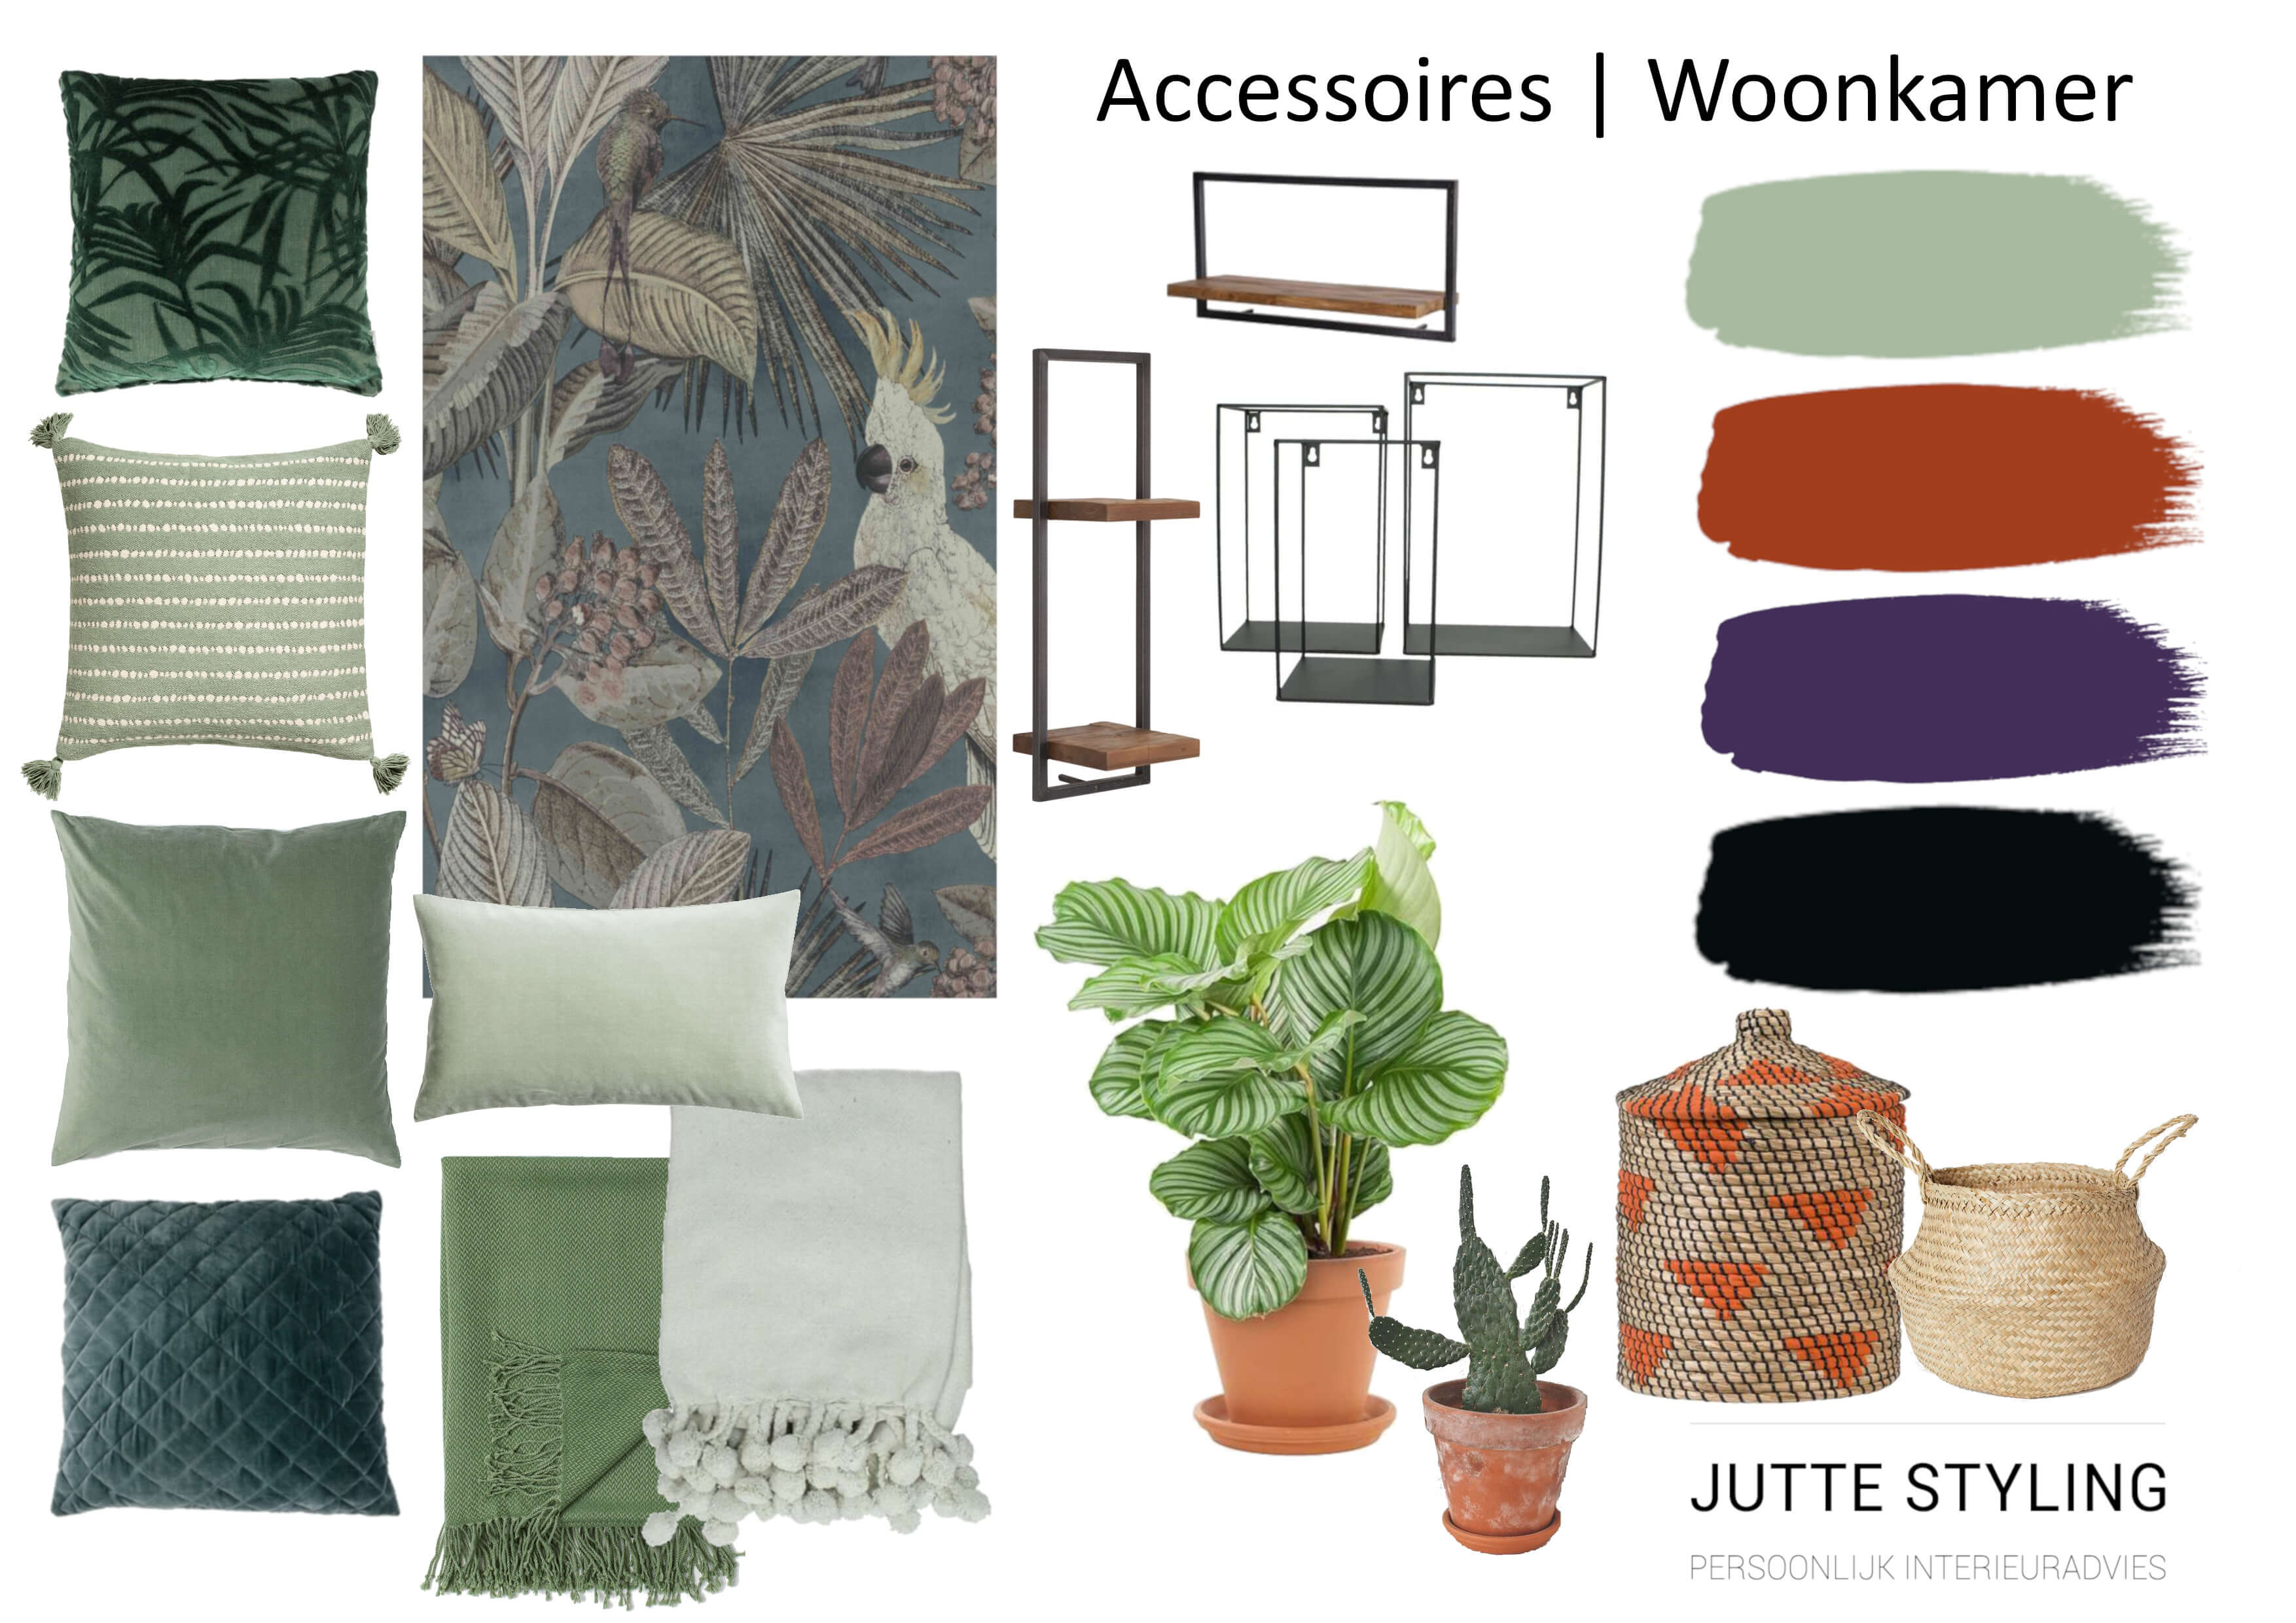 3 Accessoires Woonkamer